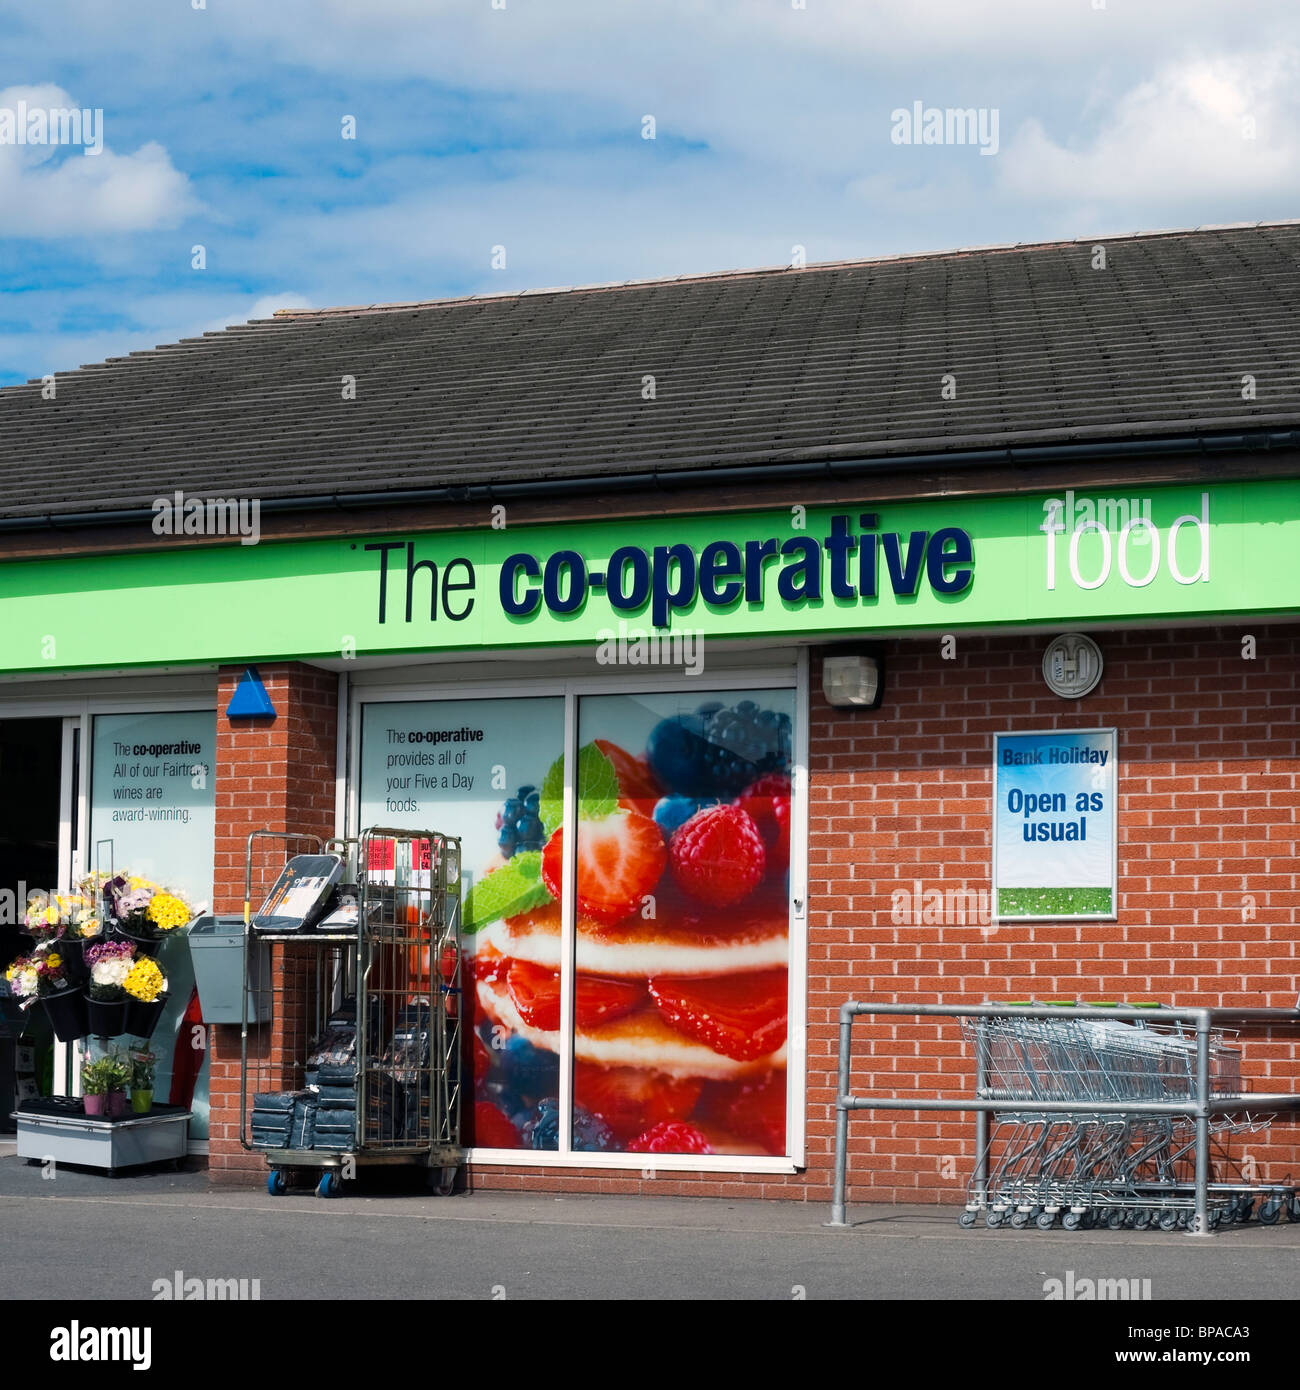 Co-operative food store in Hereford, Herefordshire, UK. Exterior of Co-op food shop. - Stock Image